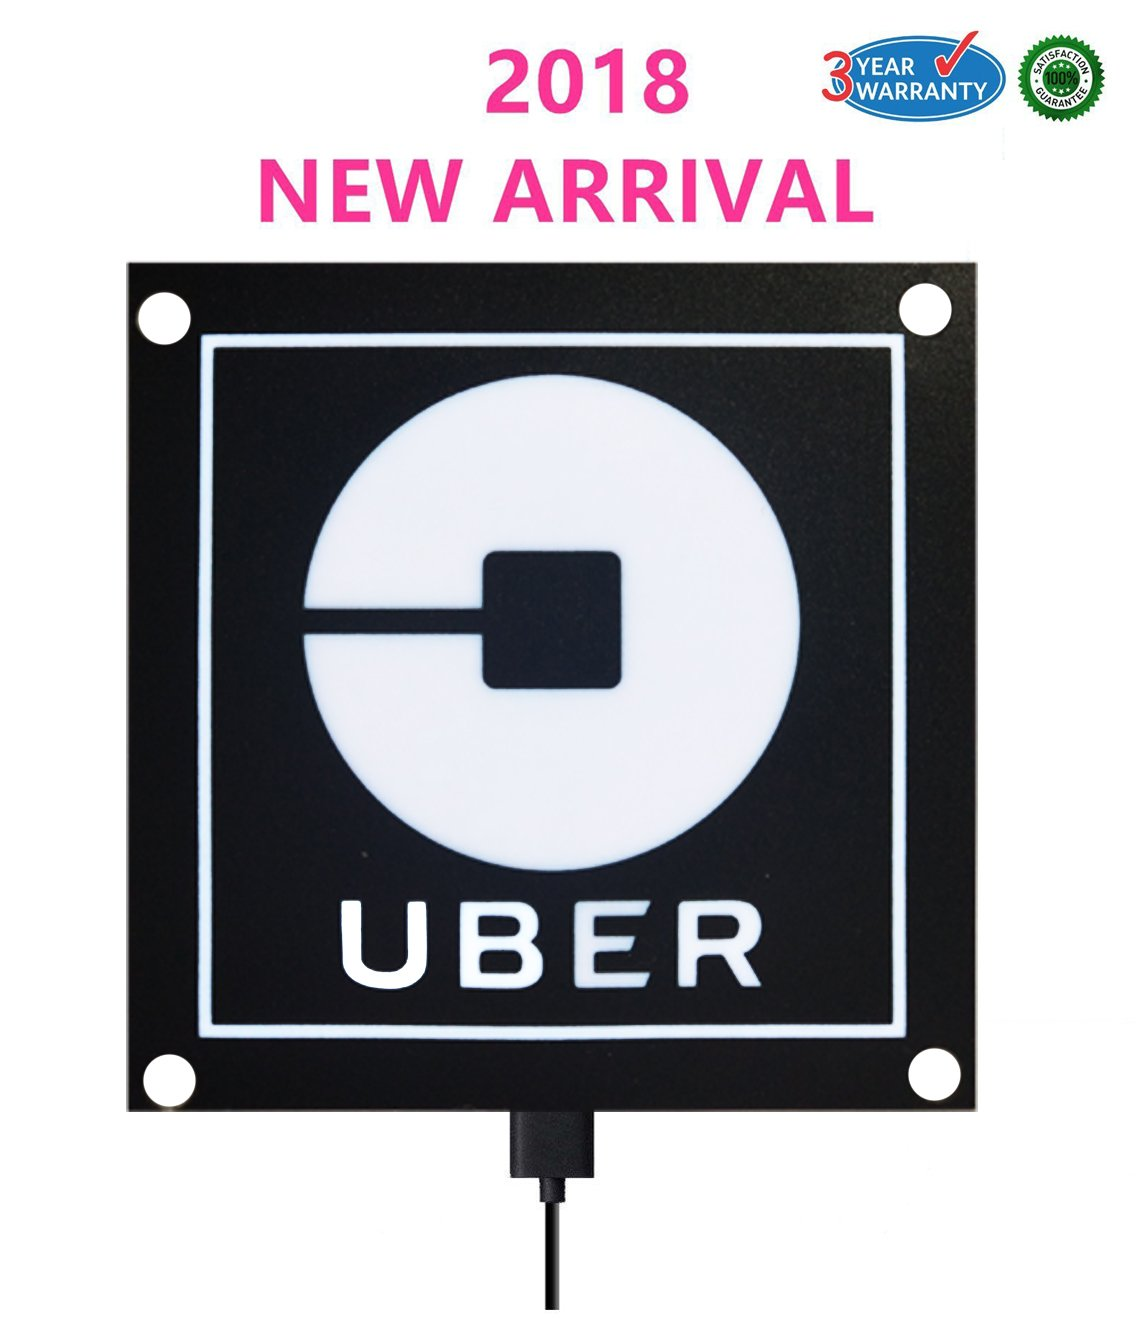 Run helix uber sign light uber logo uber el car sticker glow light sign decal on window with usb powered uber lyft led light sign decal sticker on car